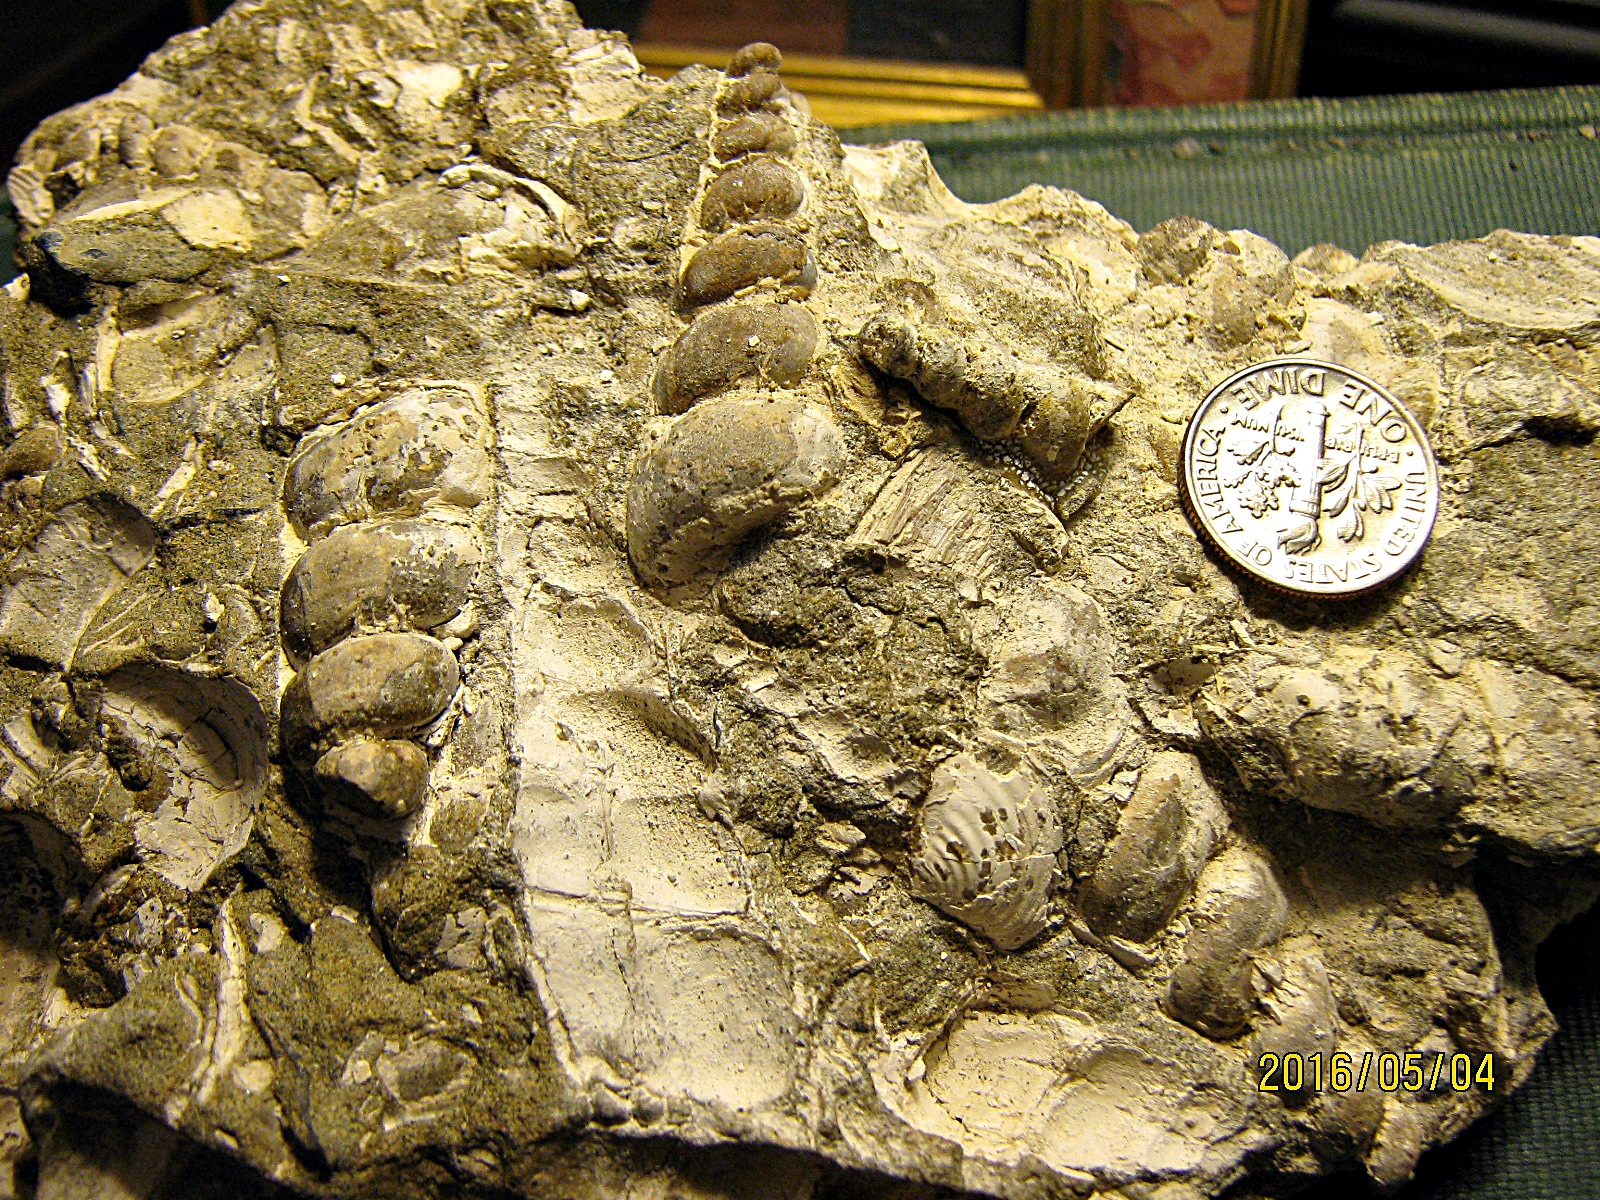 Aquia Formation Turritella and Bivalve Molds with Some Shell Material